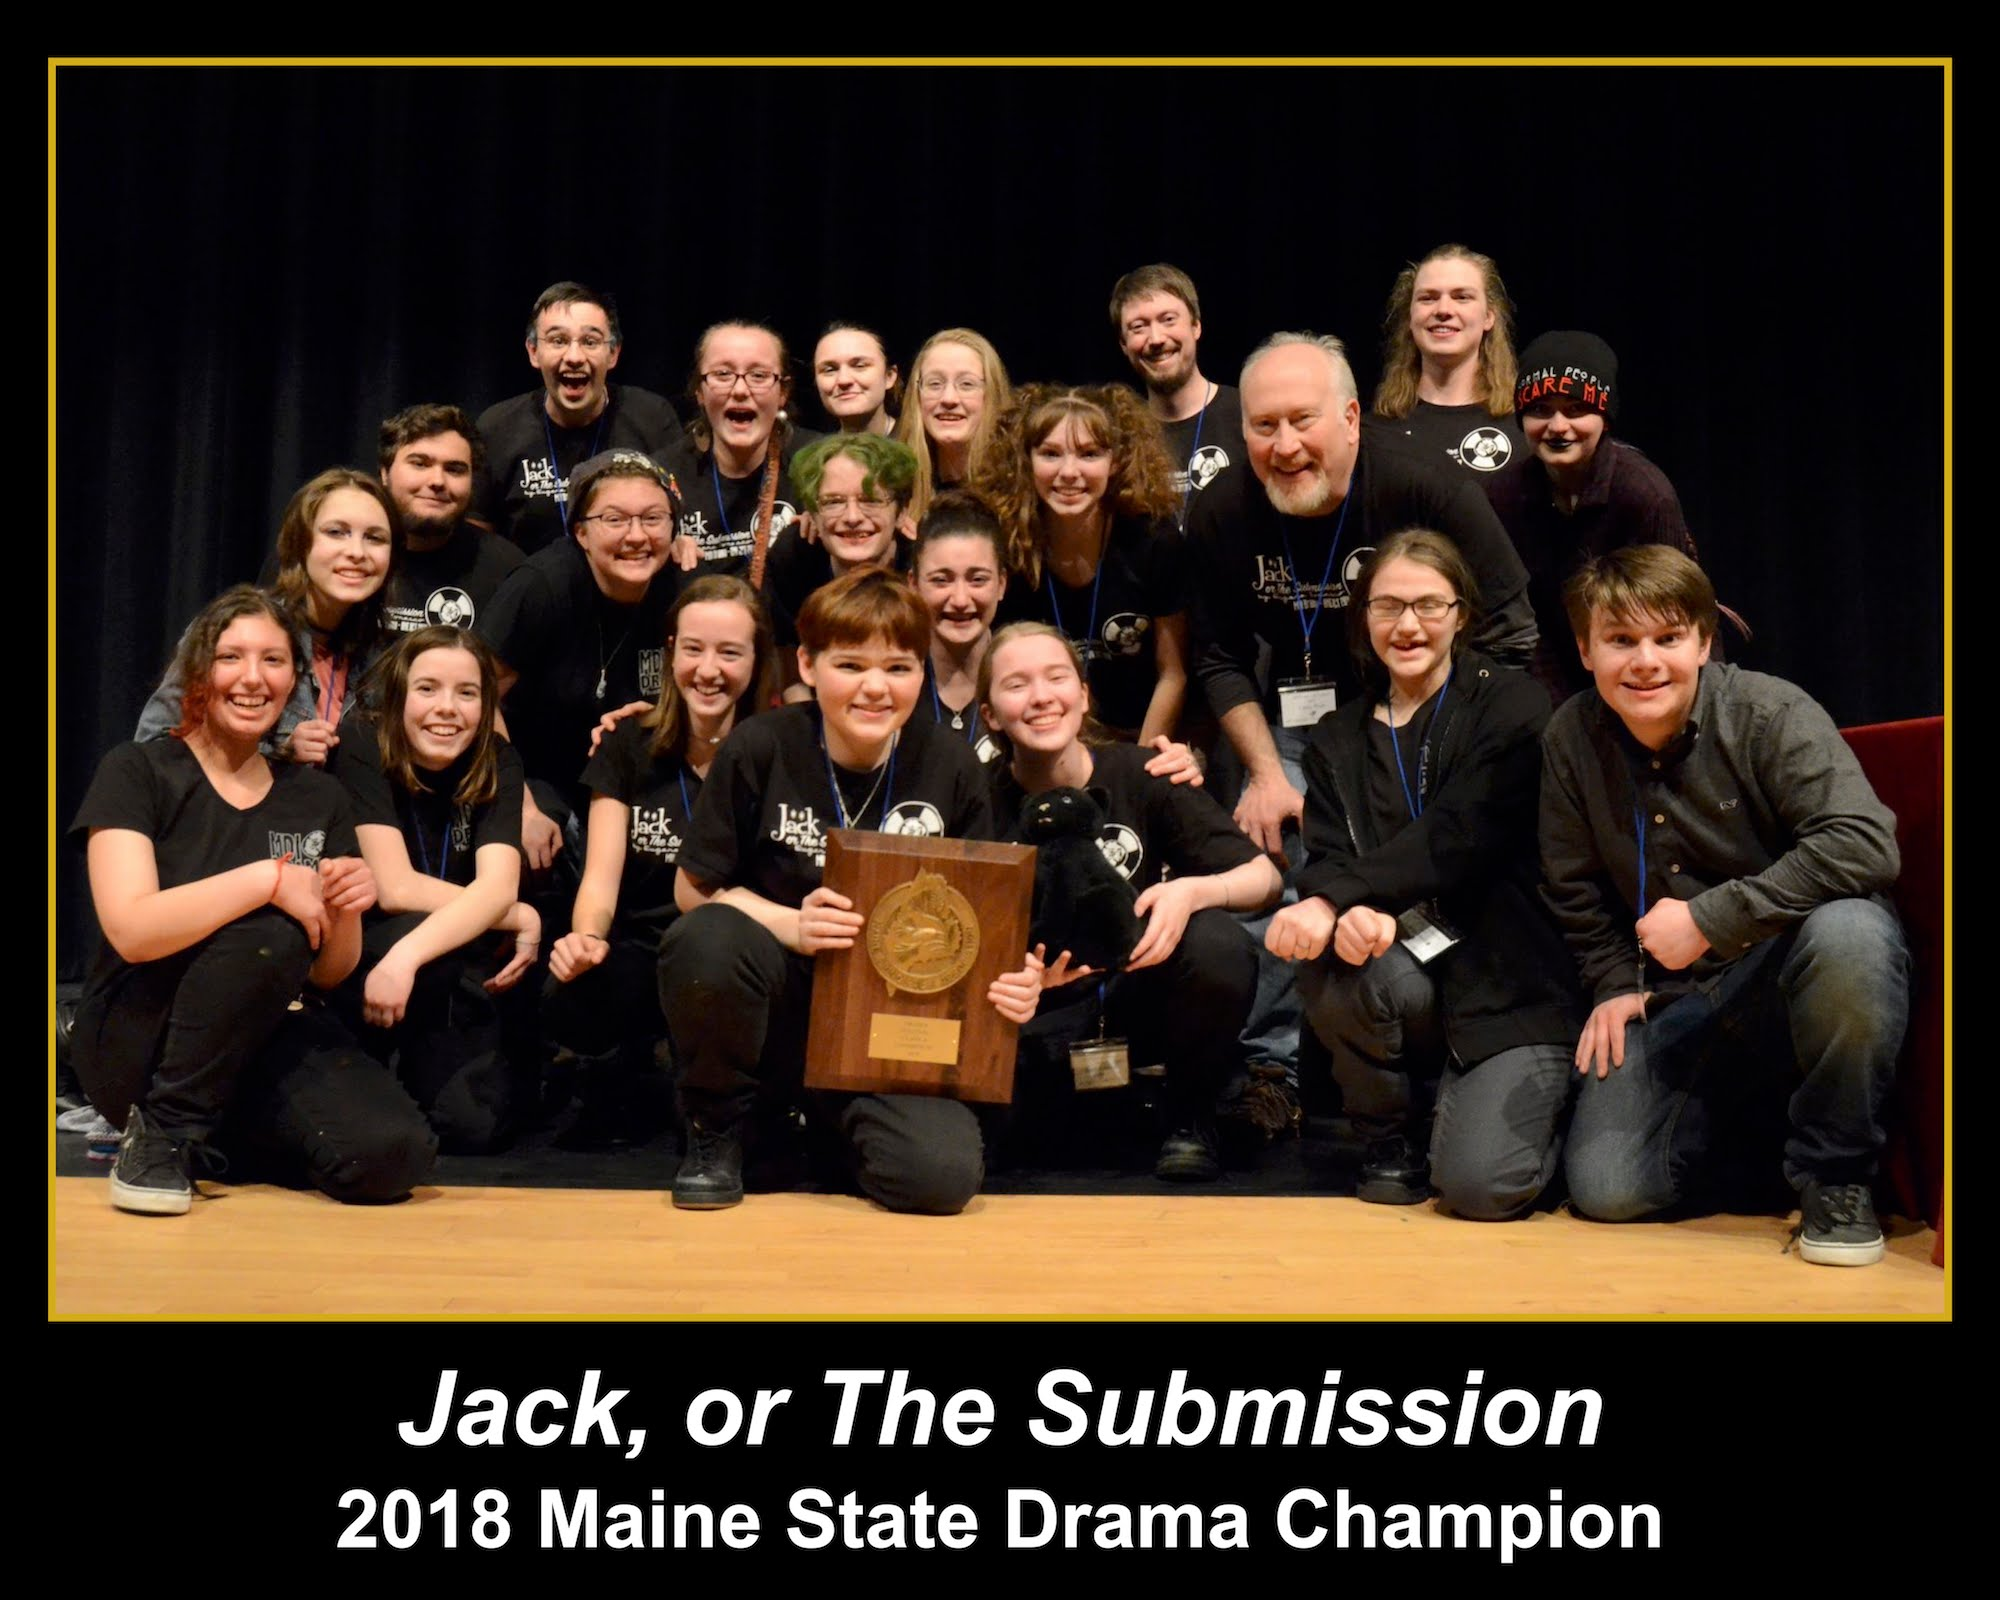 One Act 2018 - 'Jack, or The Submission' by Eugene Ionesco